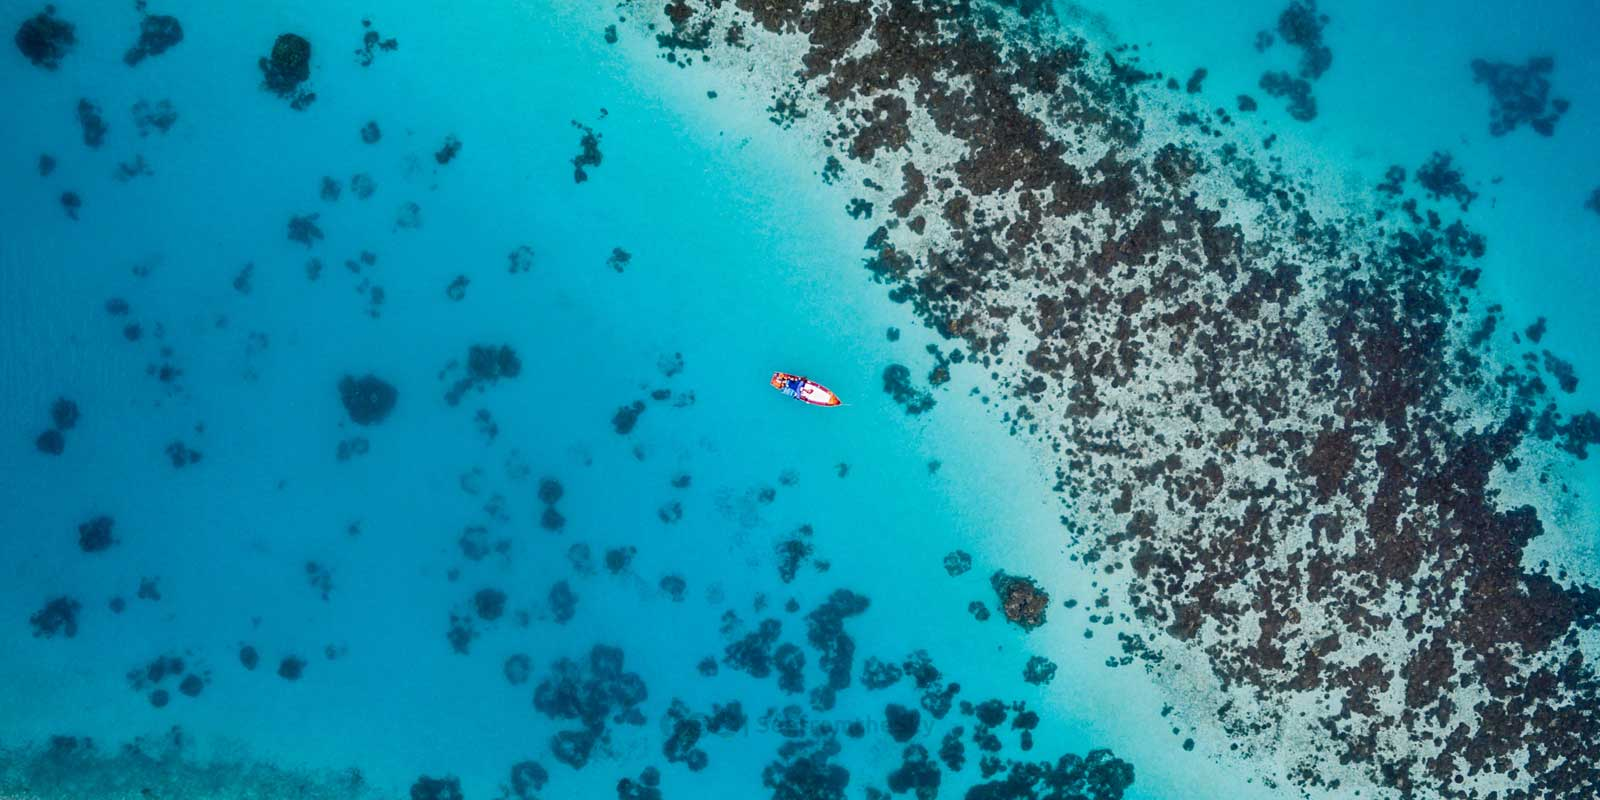 Aerial shot of coral reef near the Maldives, with an orange boat.